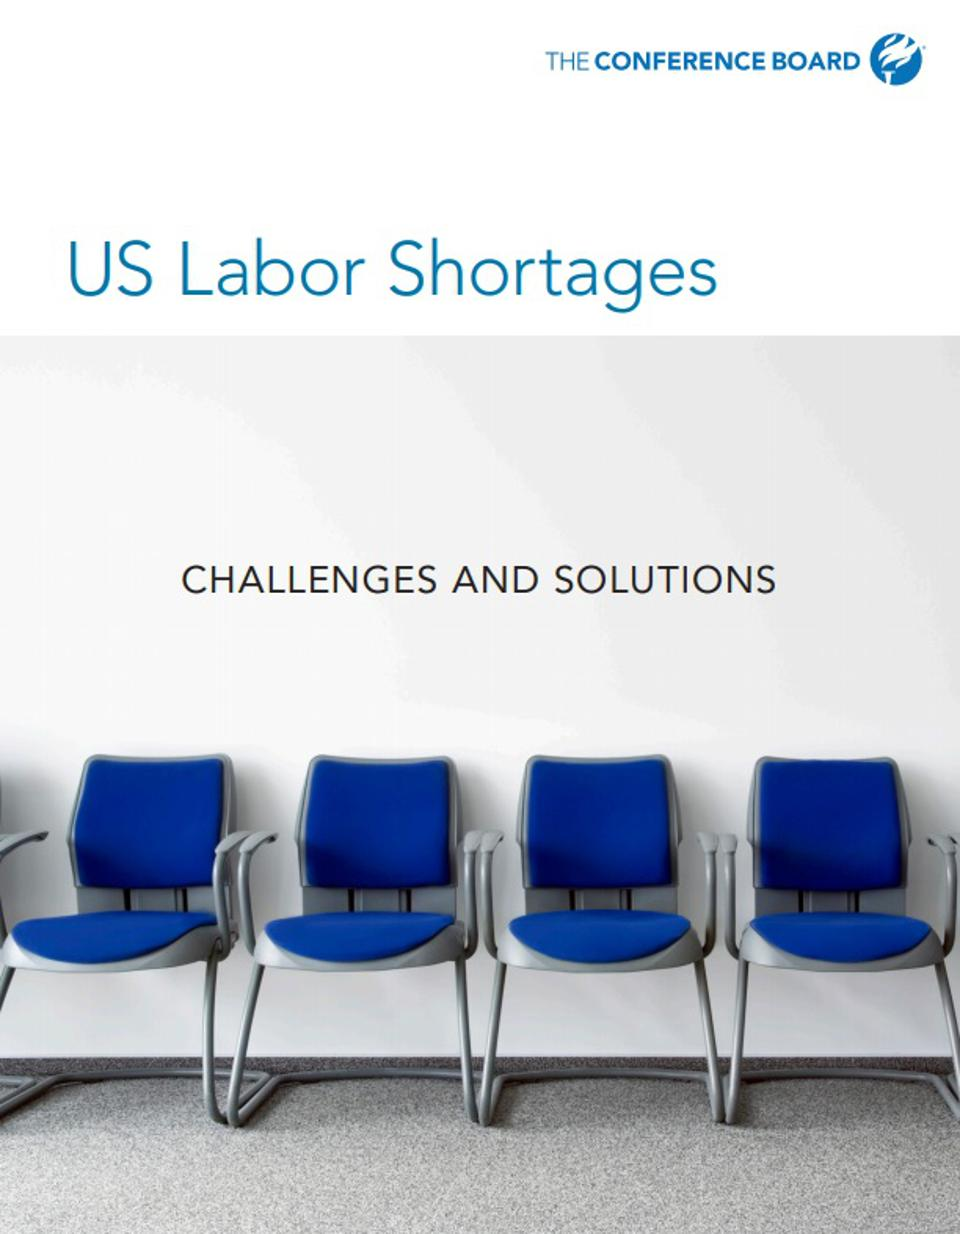 US Labor Shortages report by The Conference Report